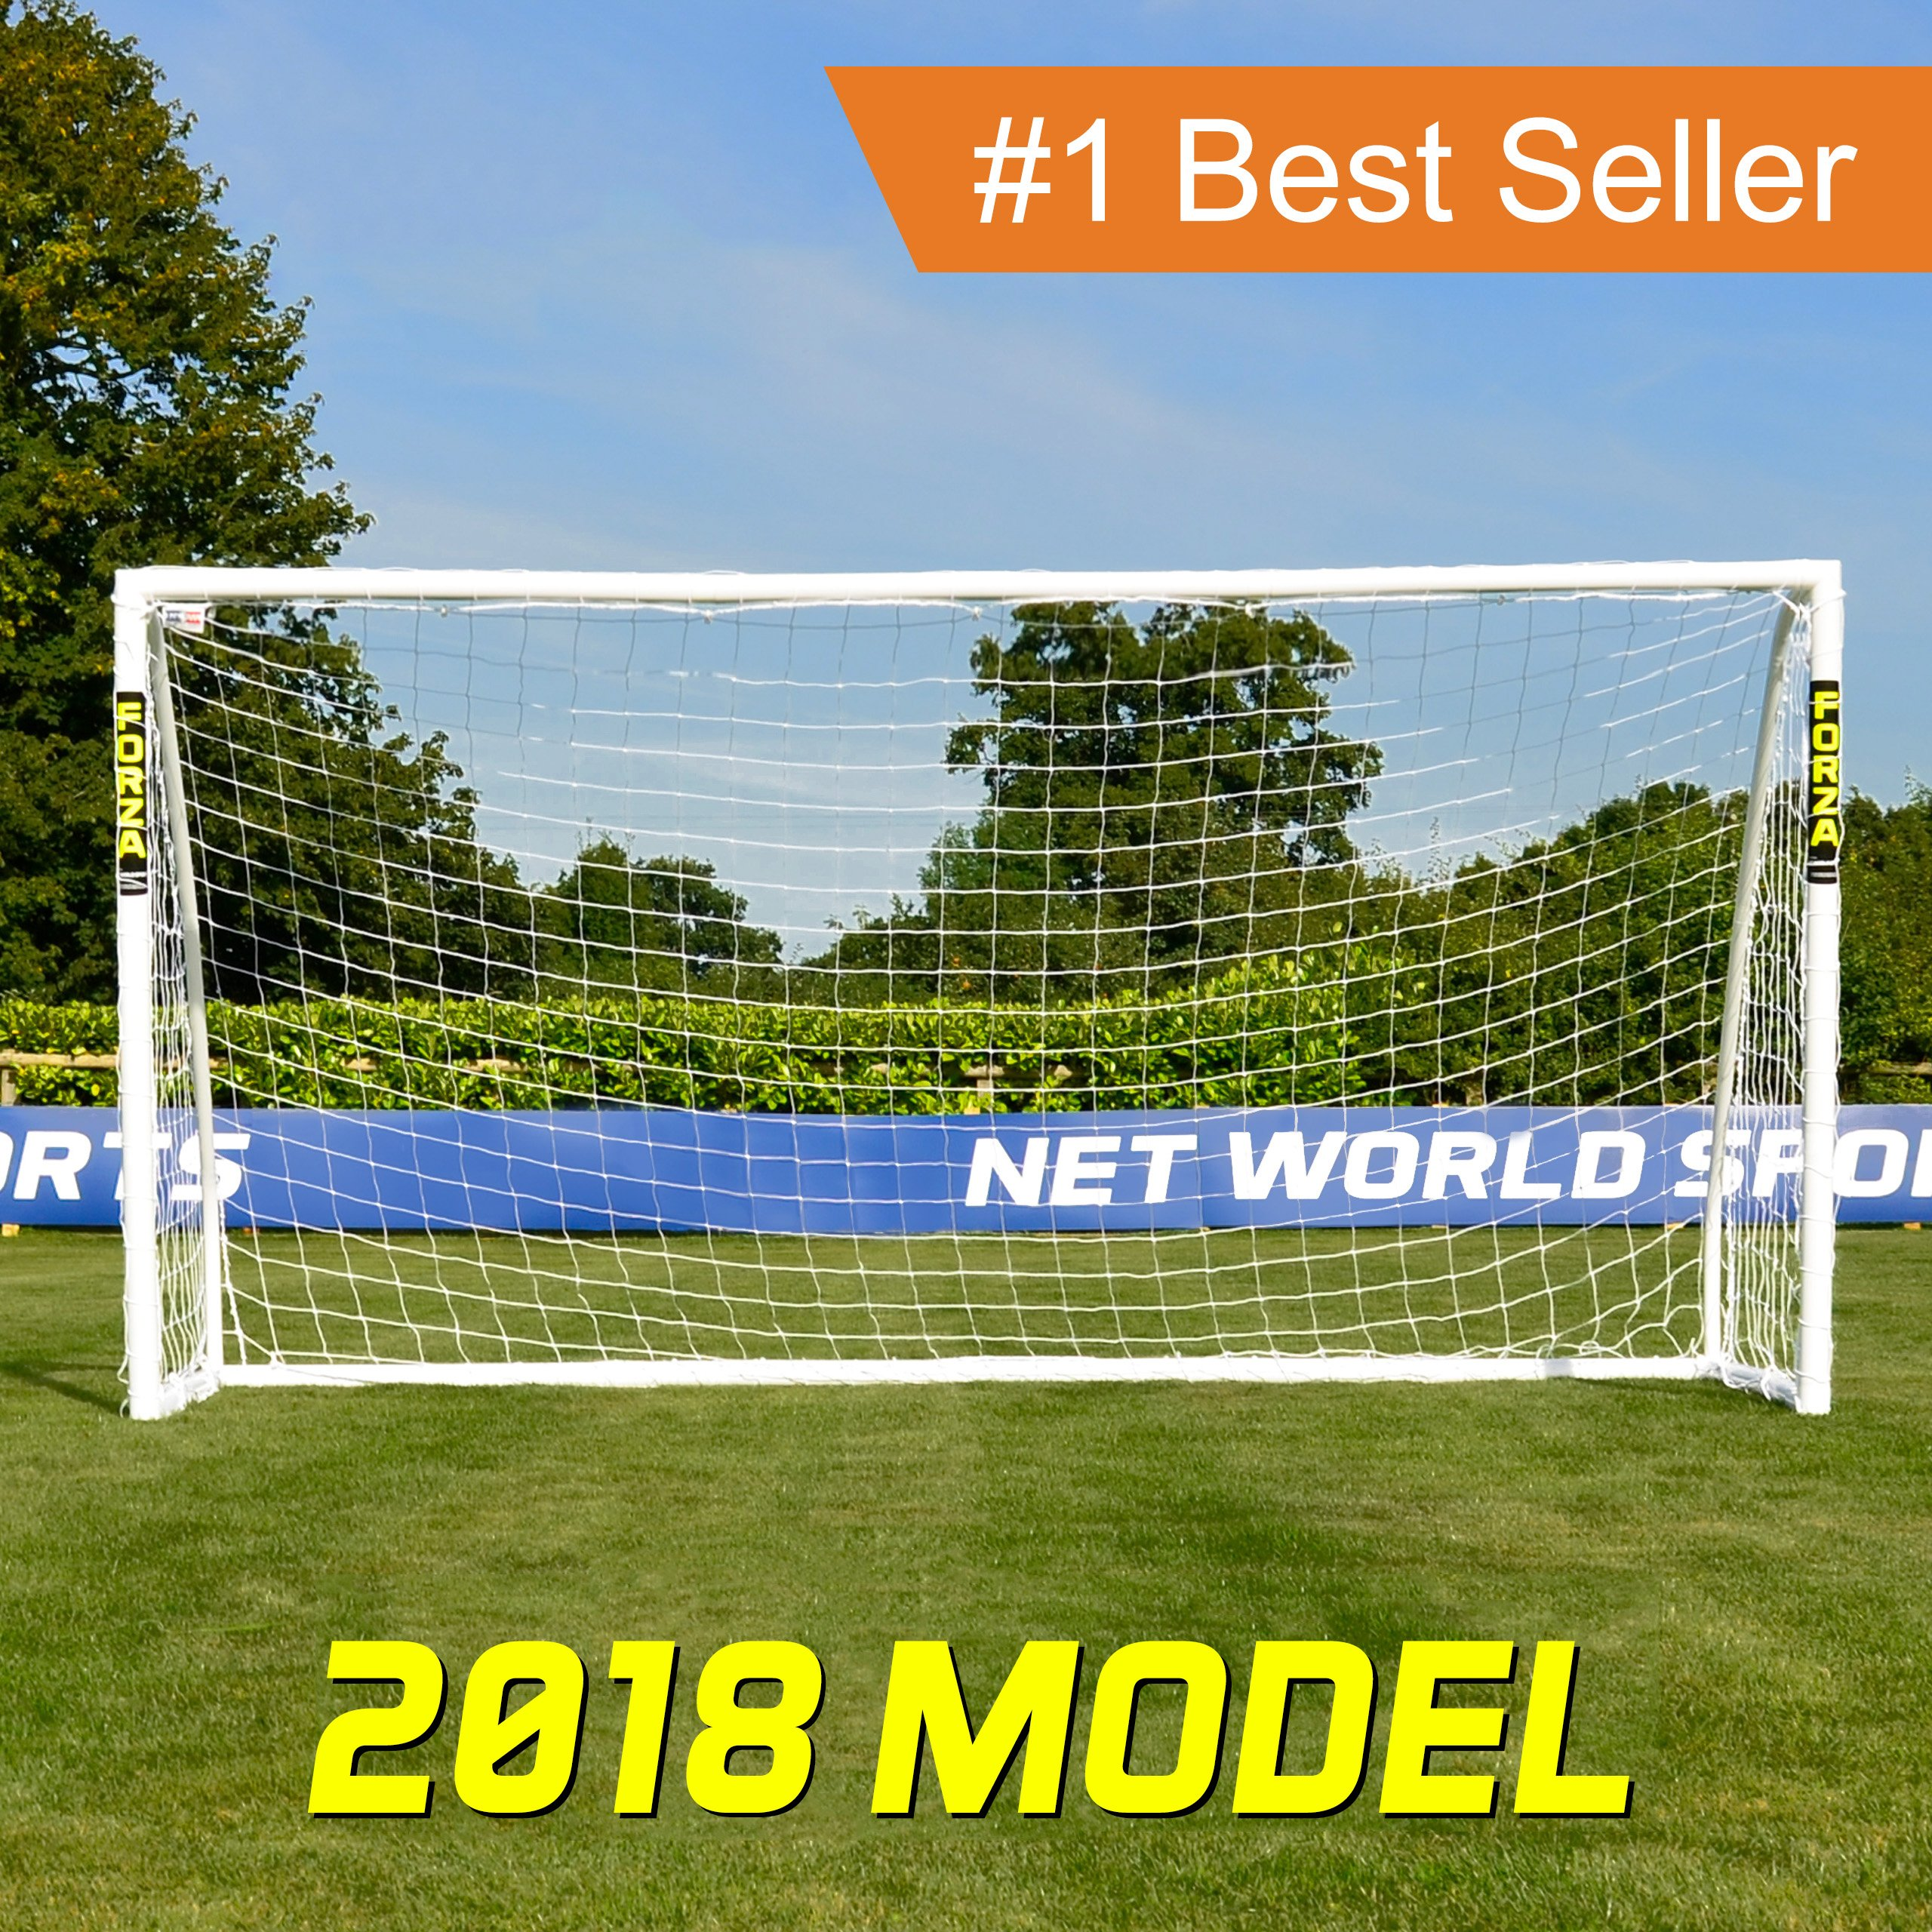 d0d10f066 FORZA Soccer Goal - The Ultimate Home Soccer Goal! Leave These Soccer Goals  Up In